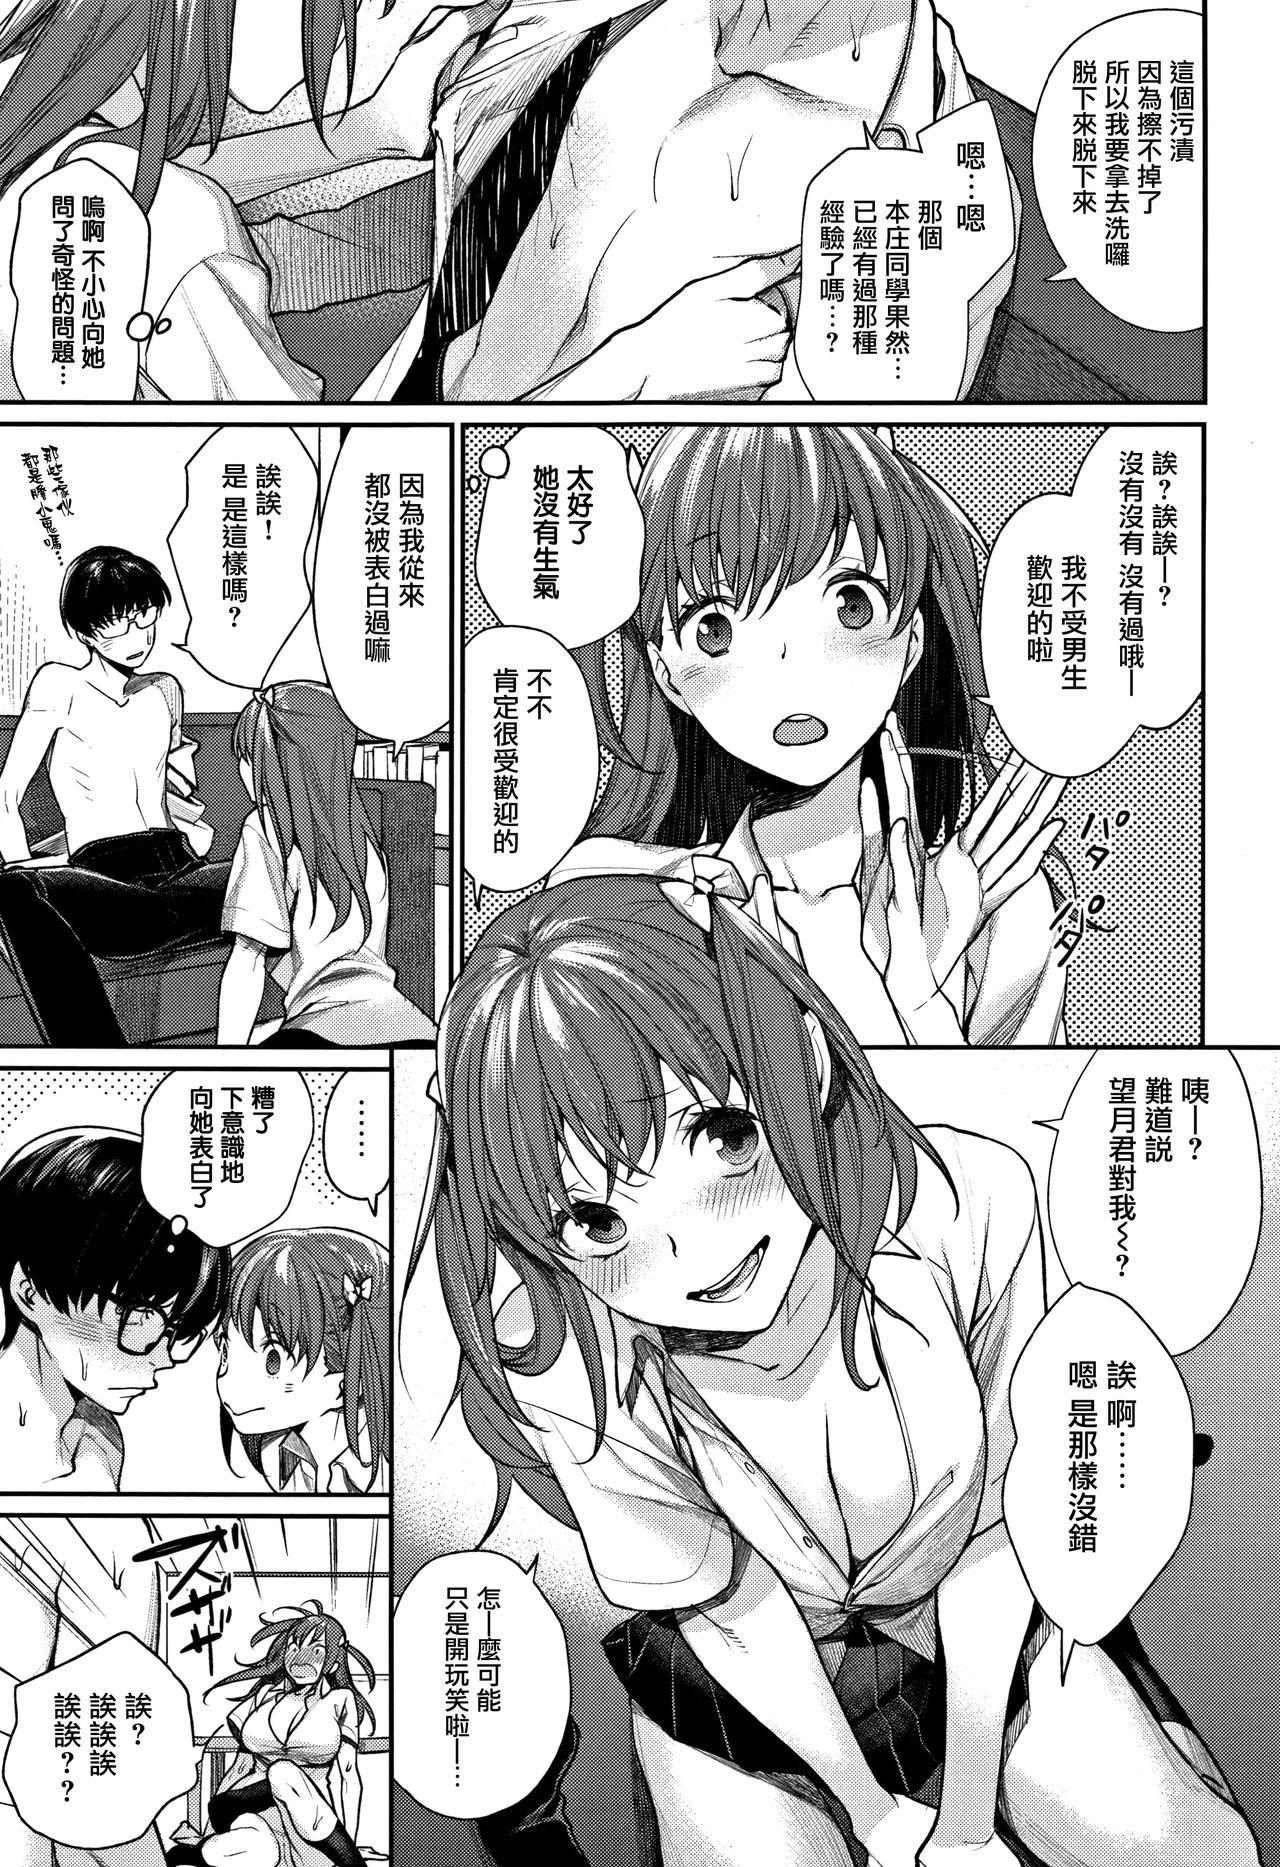 [MGMEE] Bokura no Etude - Our H Chu Do Ch.1-7 [Chinese] [無邪気漢化組] 10